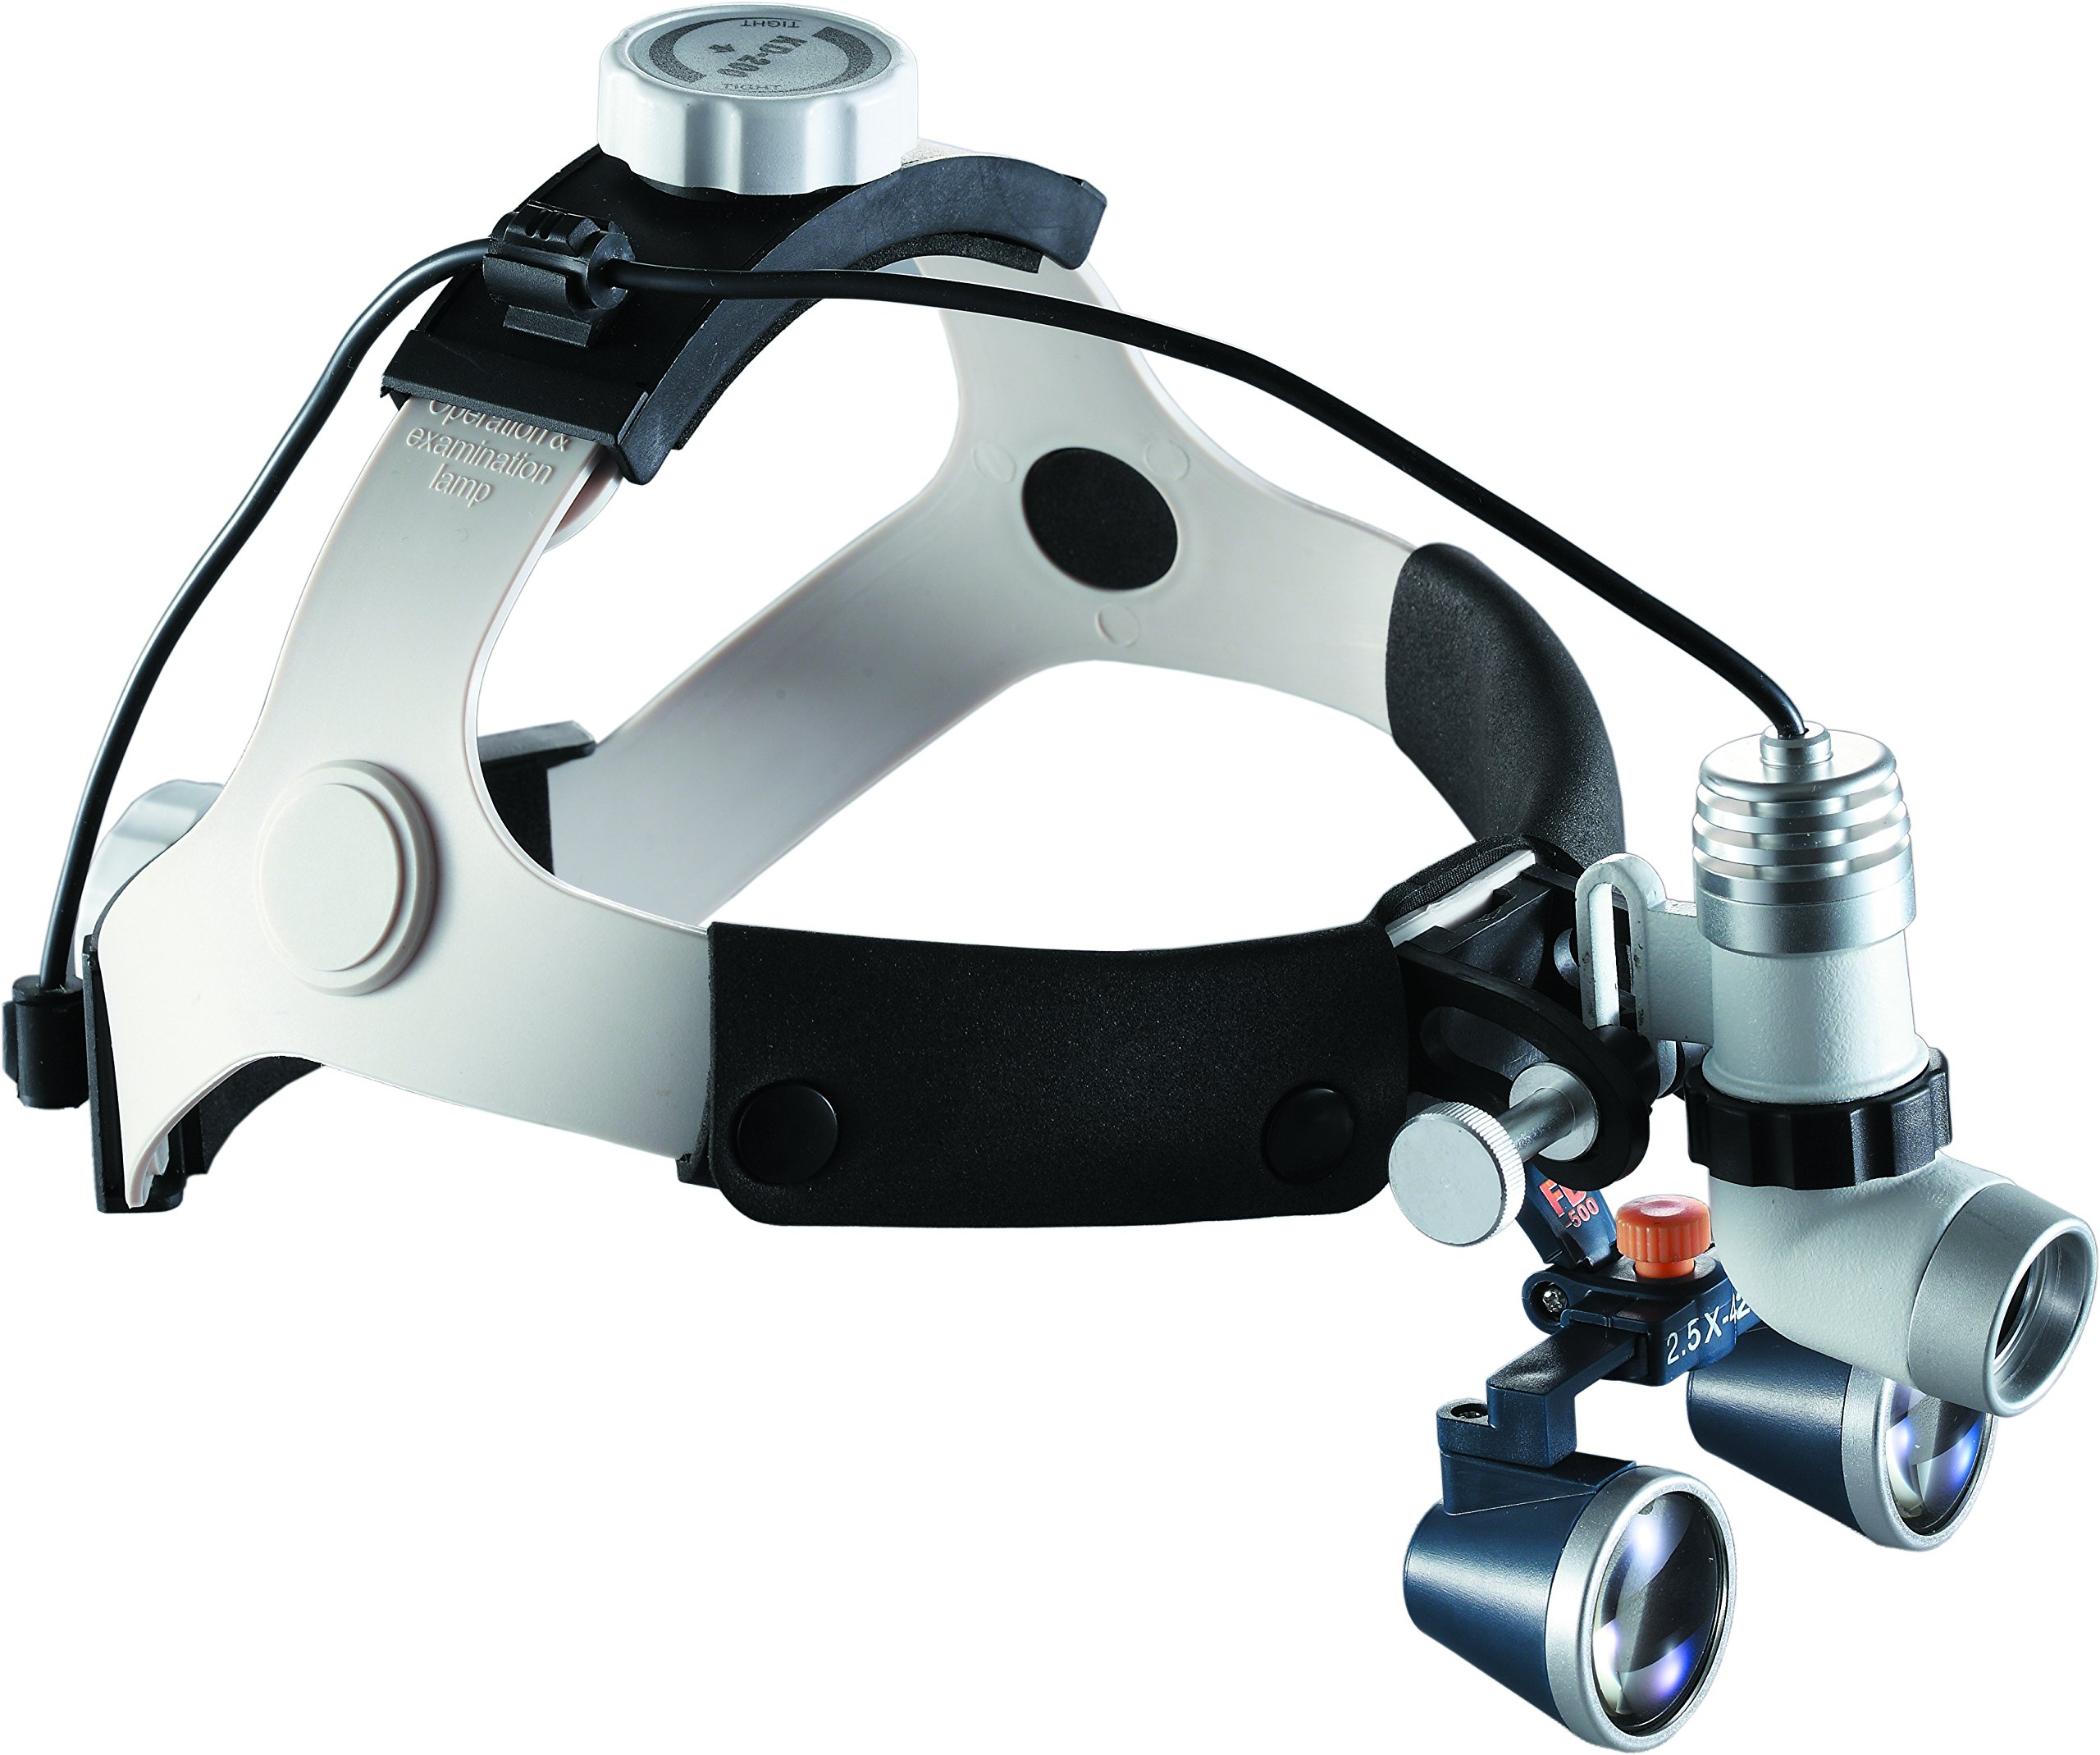 Medical Dental Surgical Binocular Loupes with LED Light High Brightness Lamp for Surgery Vascular (Working Distance: R(420 mm), Magnification: 3.5X